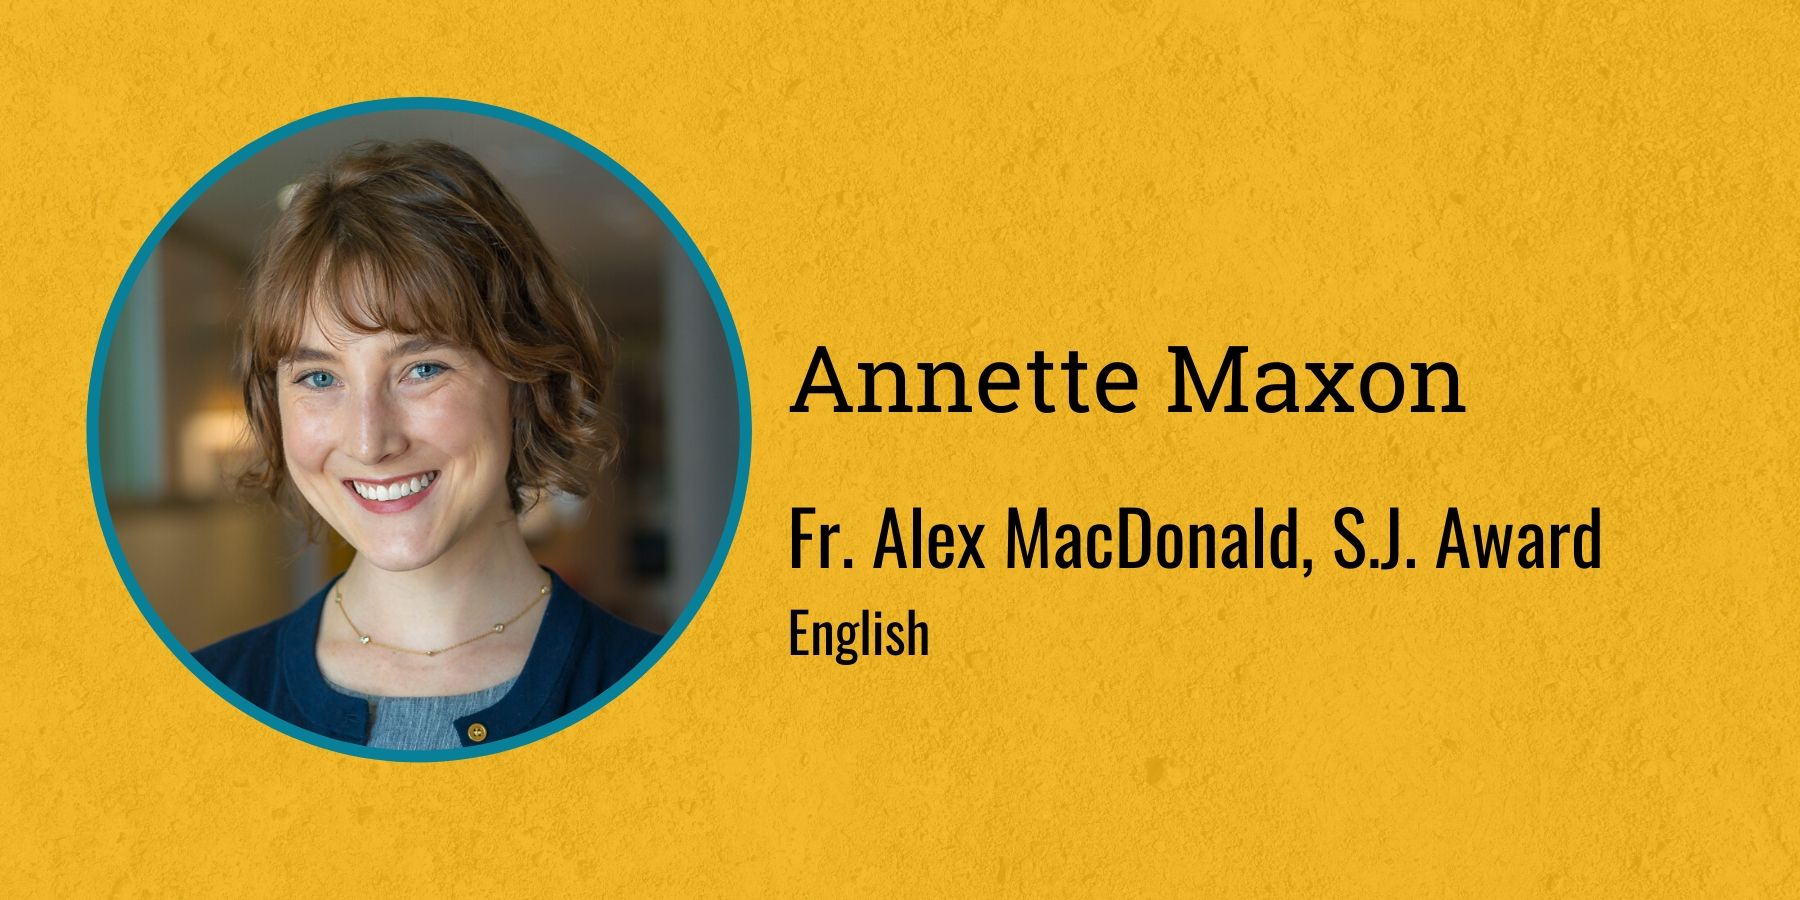 Photo of Annette Maxon and text Fr. Alex MacDonald, S.J. Award